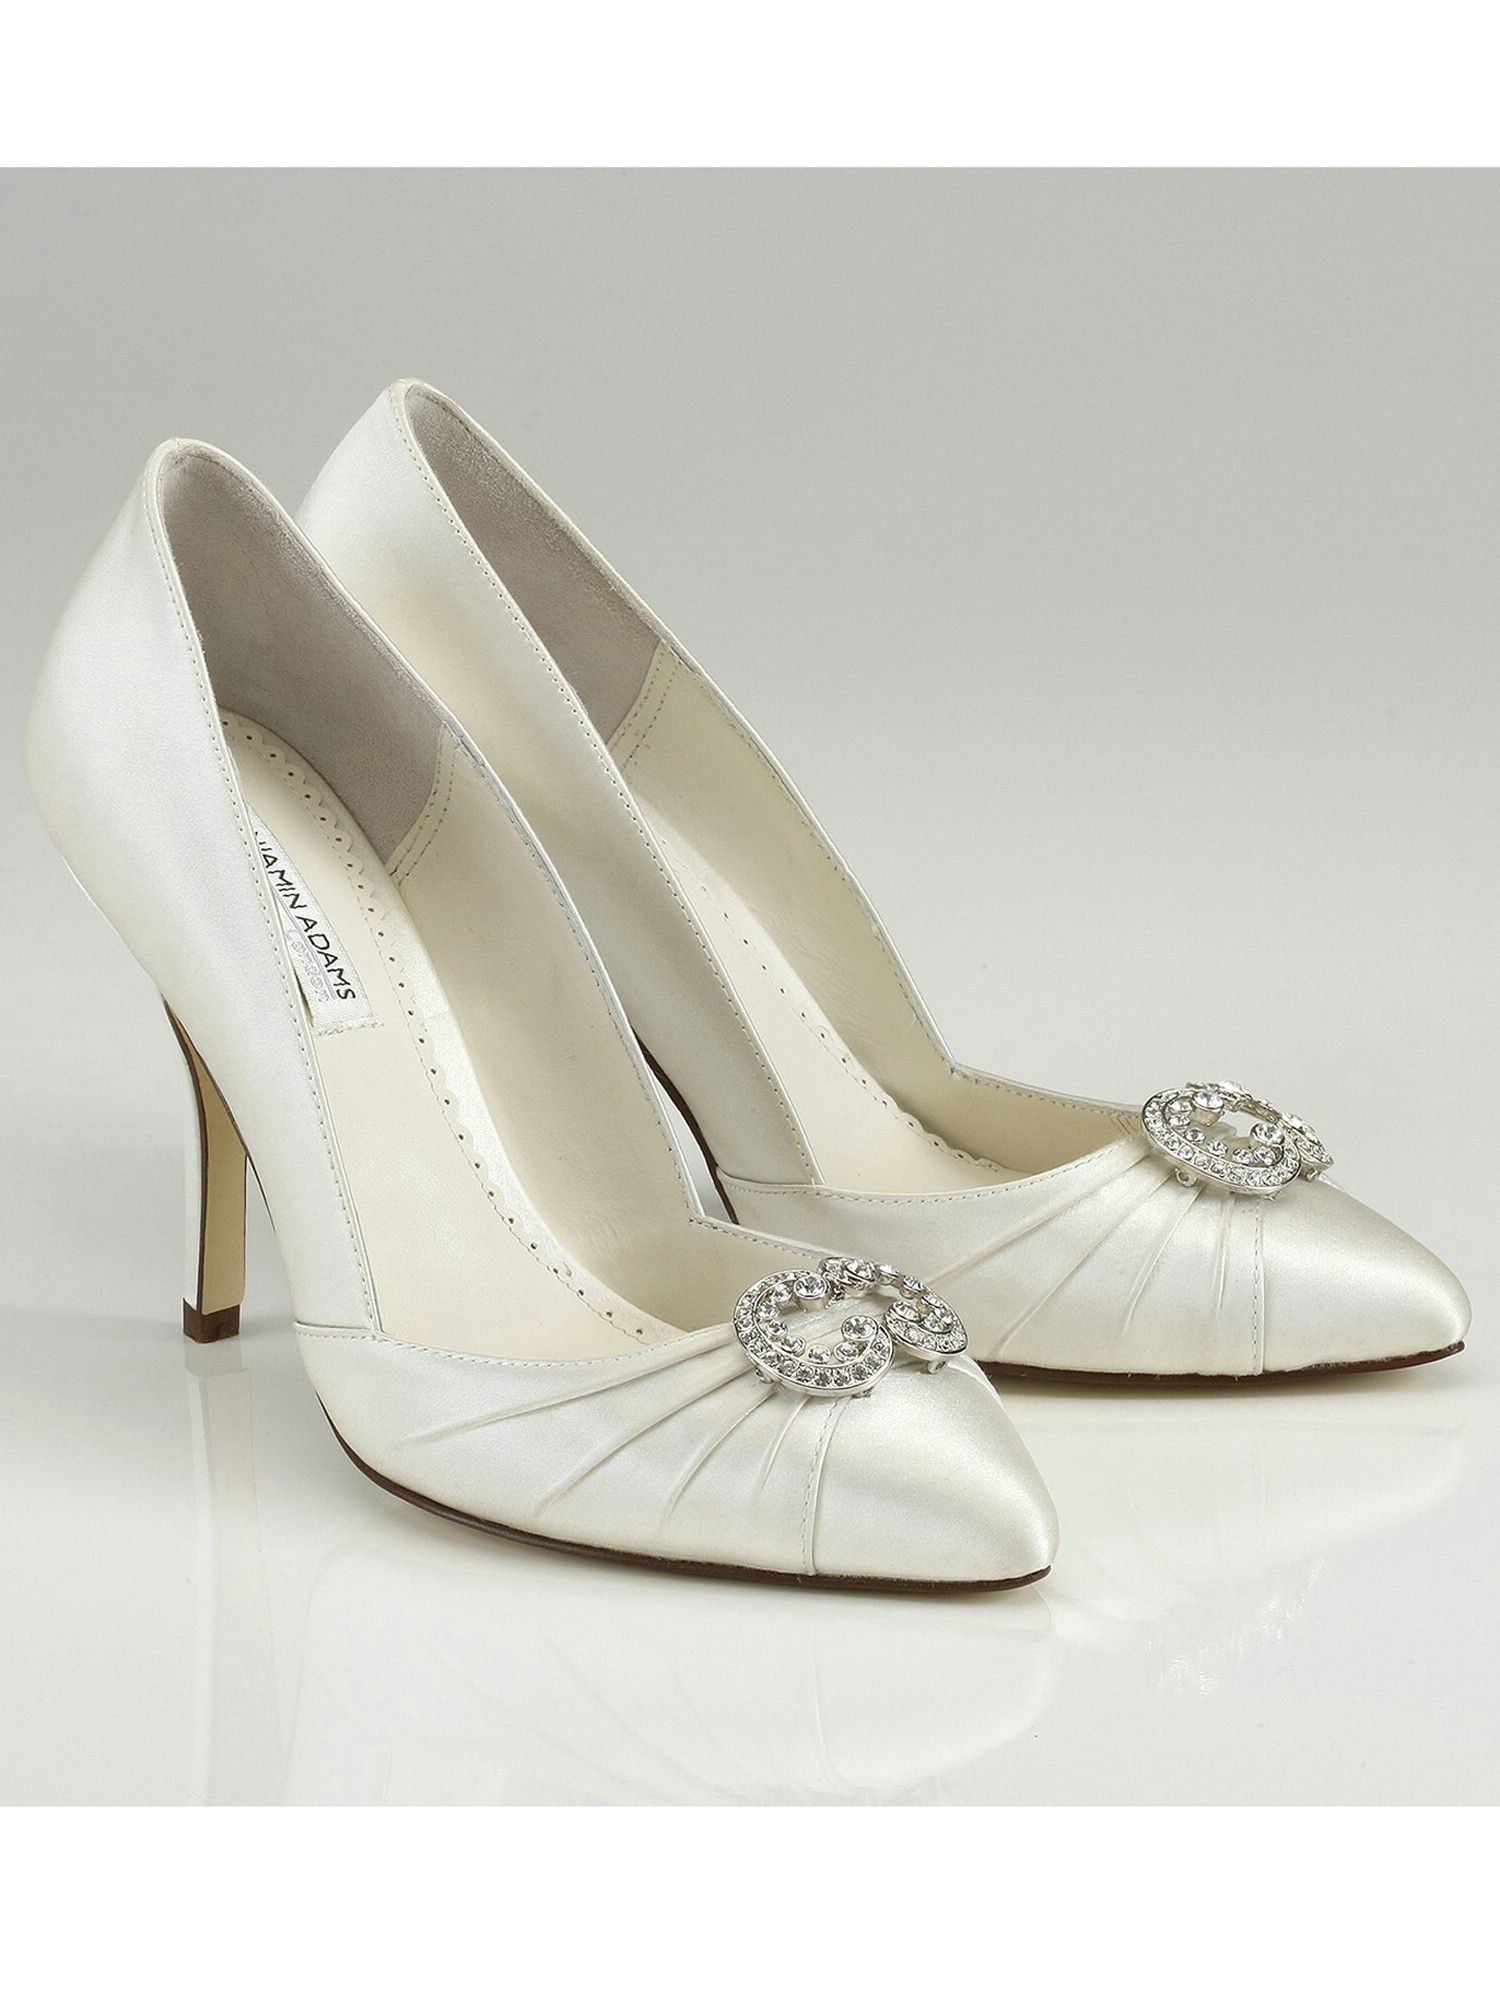 ddf04c334cf Benjamin Adams Shoes - Style Grace  Grace  -  220.00   Wedding Dresses